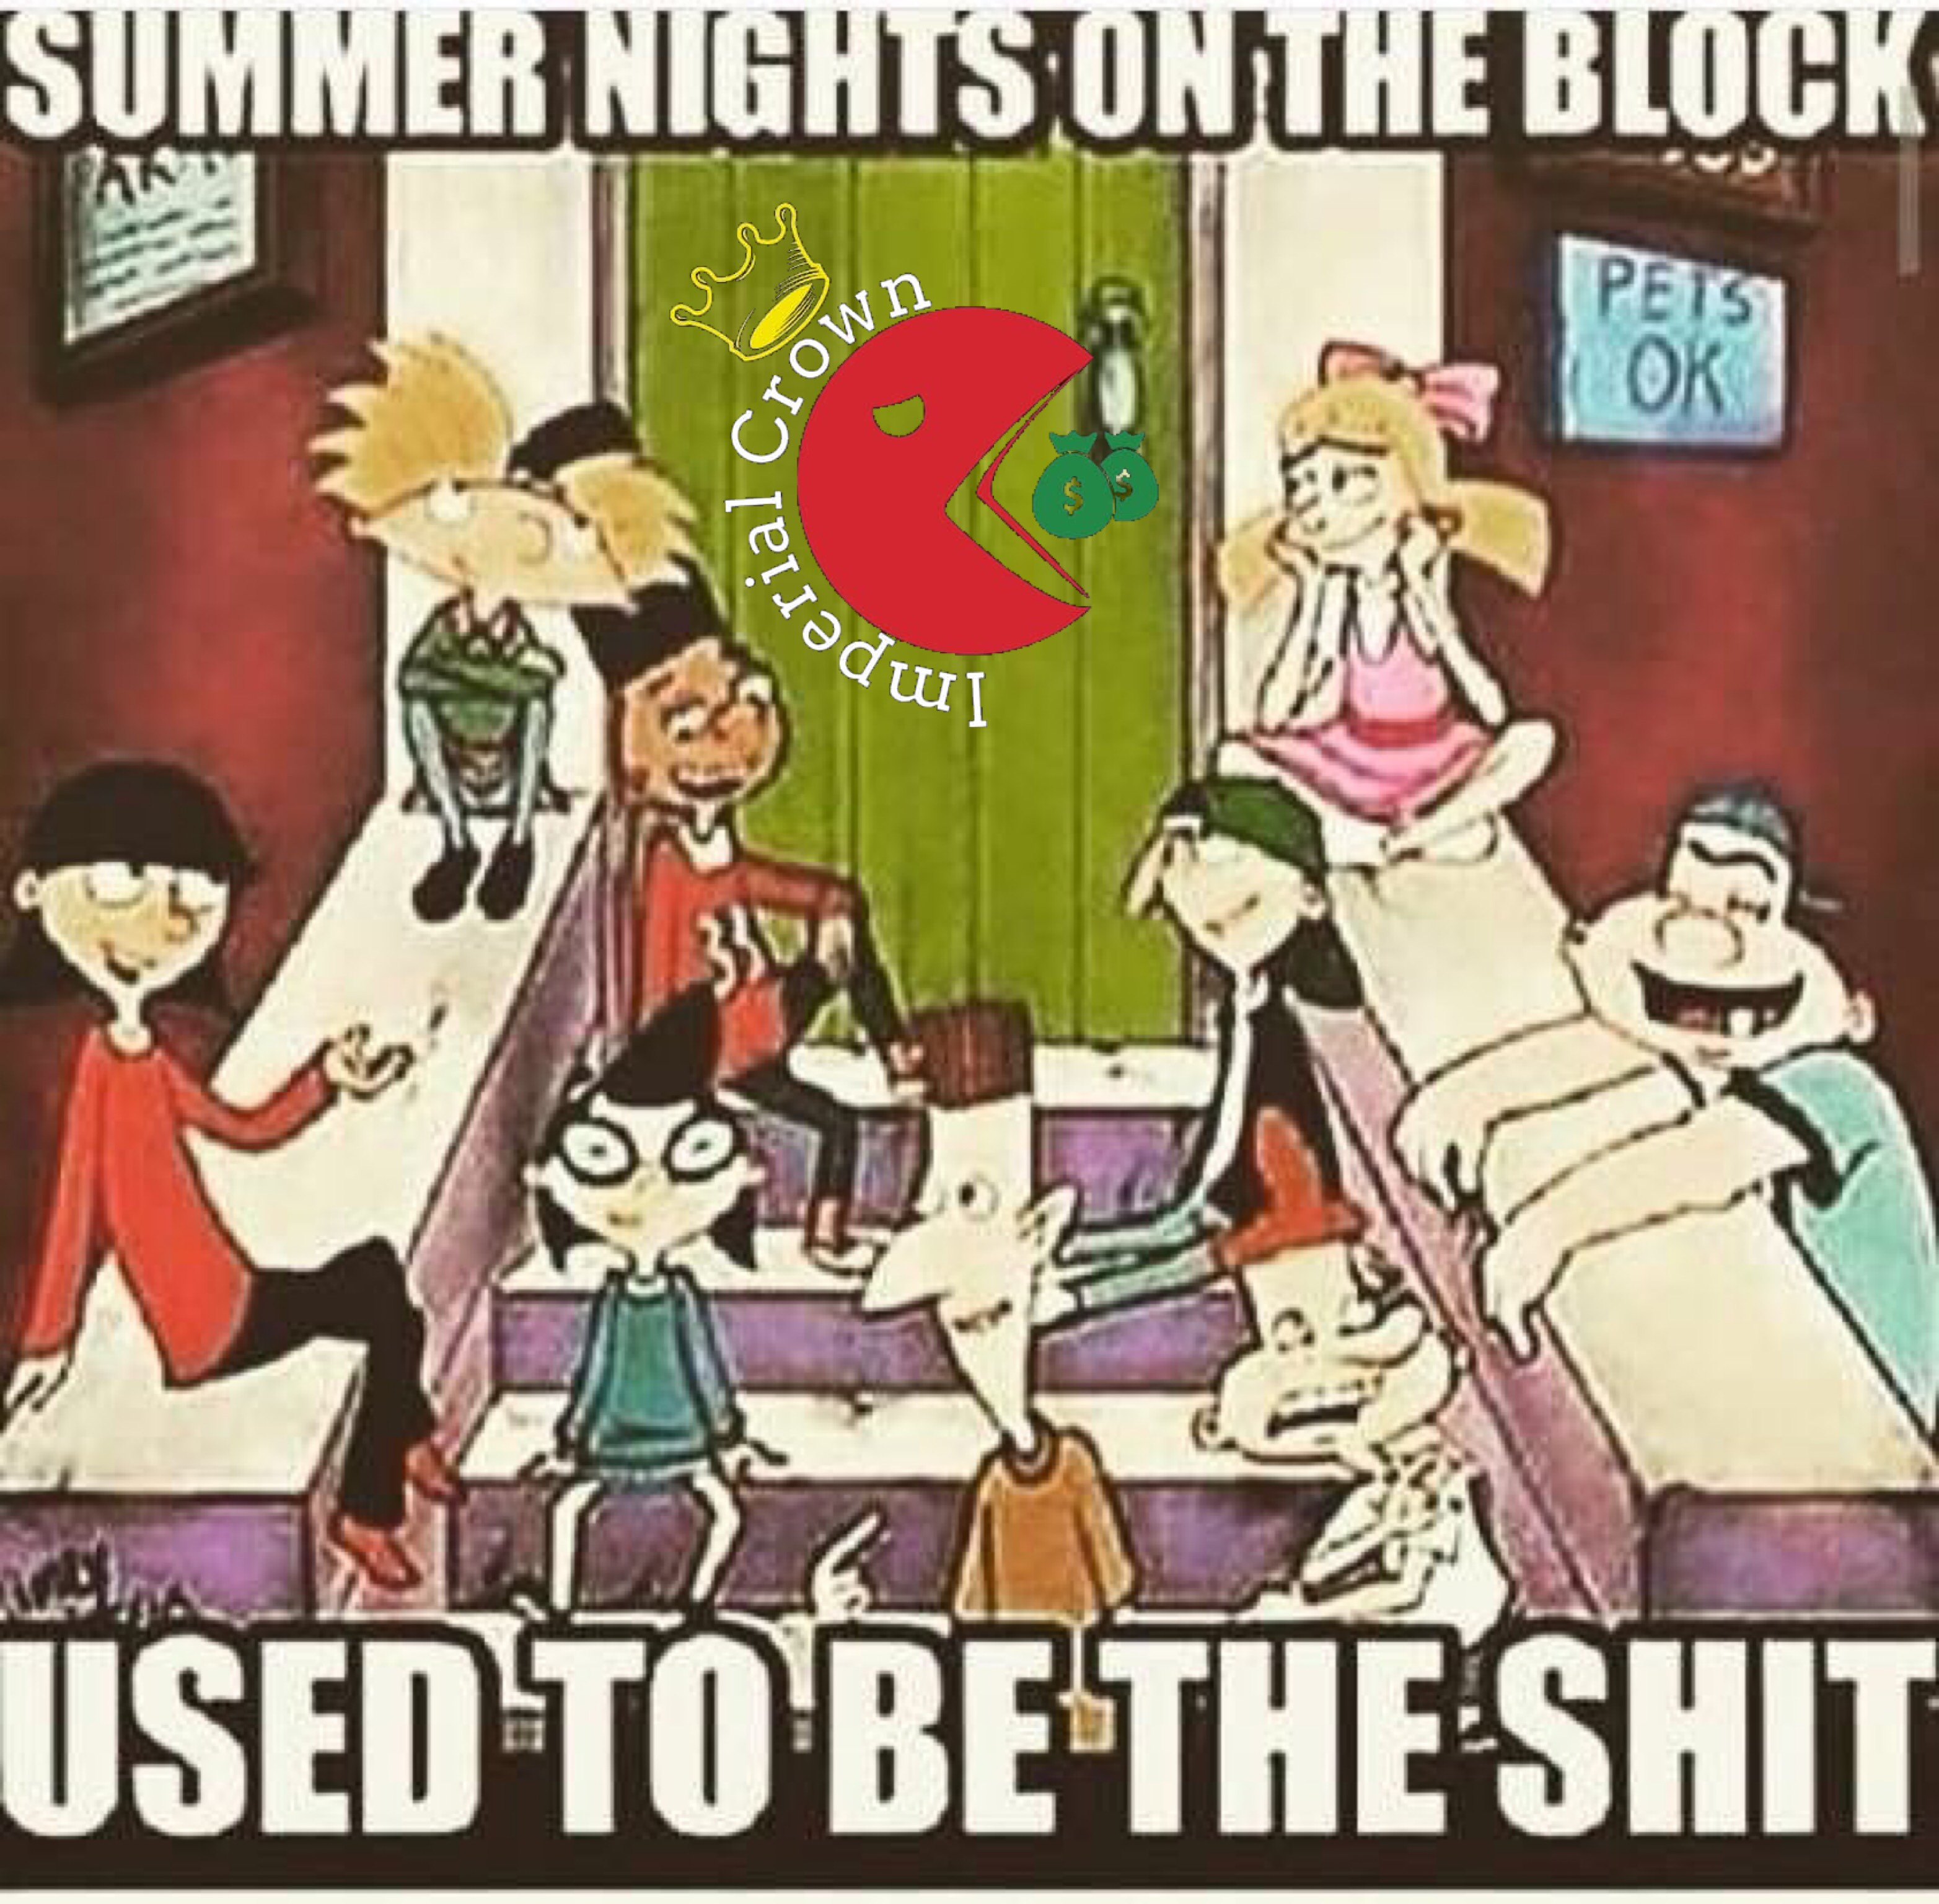 Summers nights on the block used to be the shit